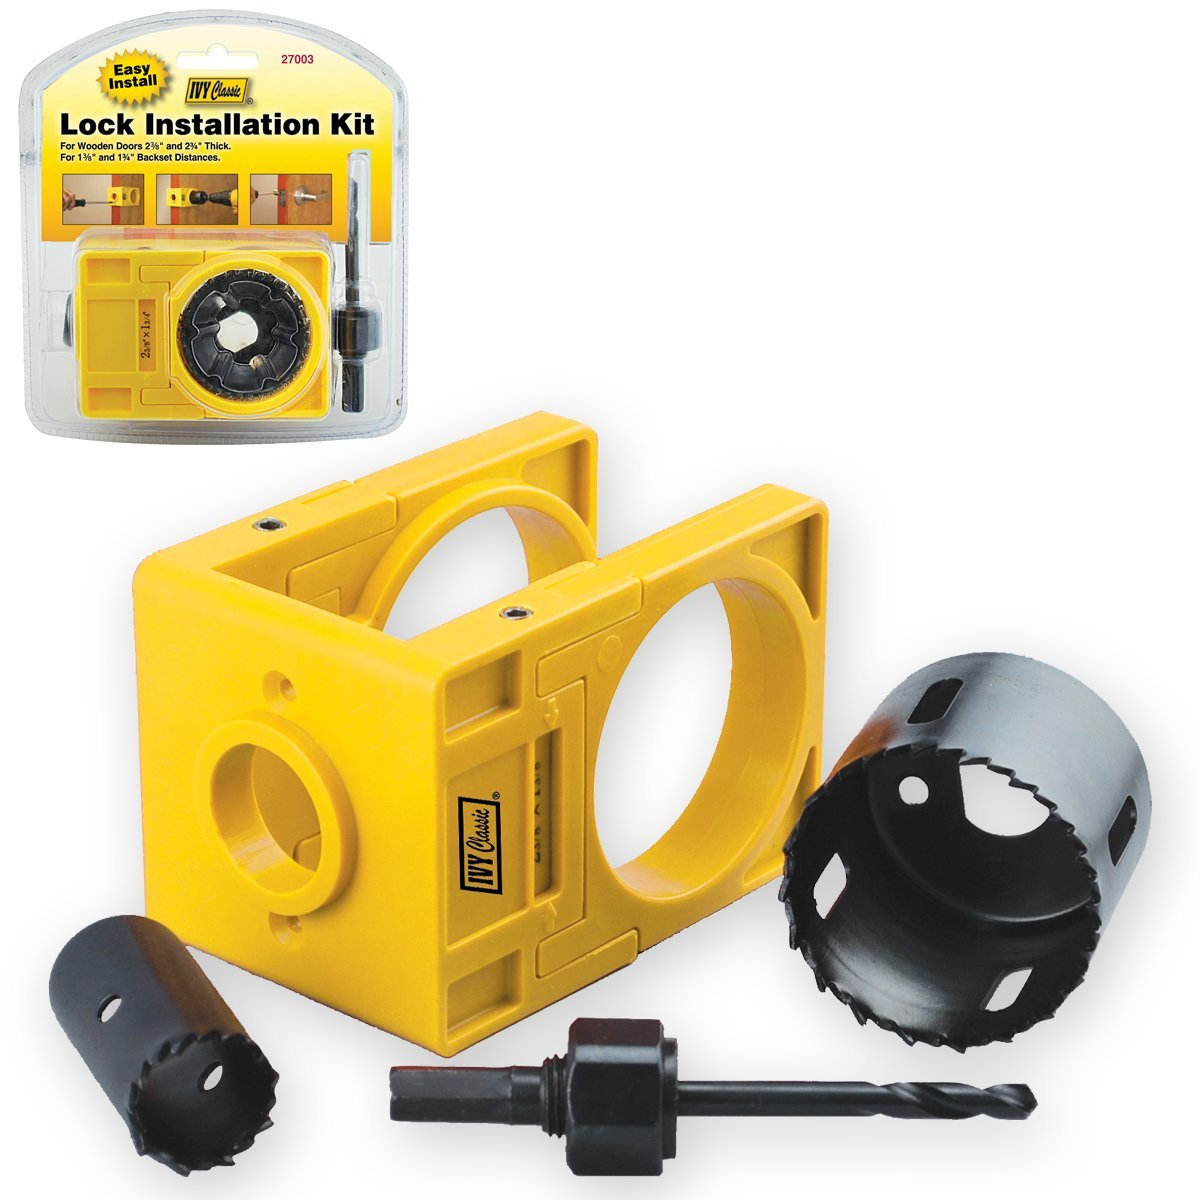 Wood Door Lock Installation Kit : Texas tool traders great variety of tools and fasteners